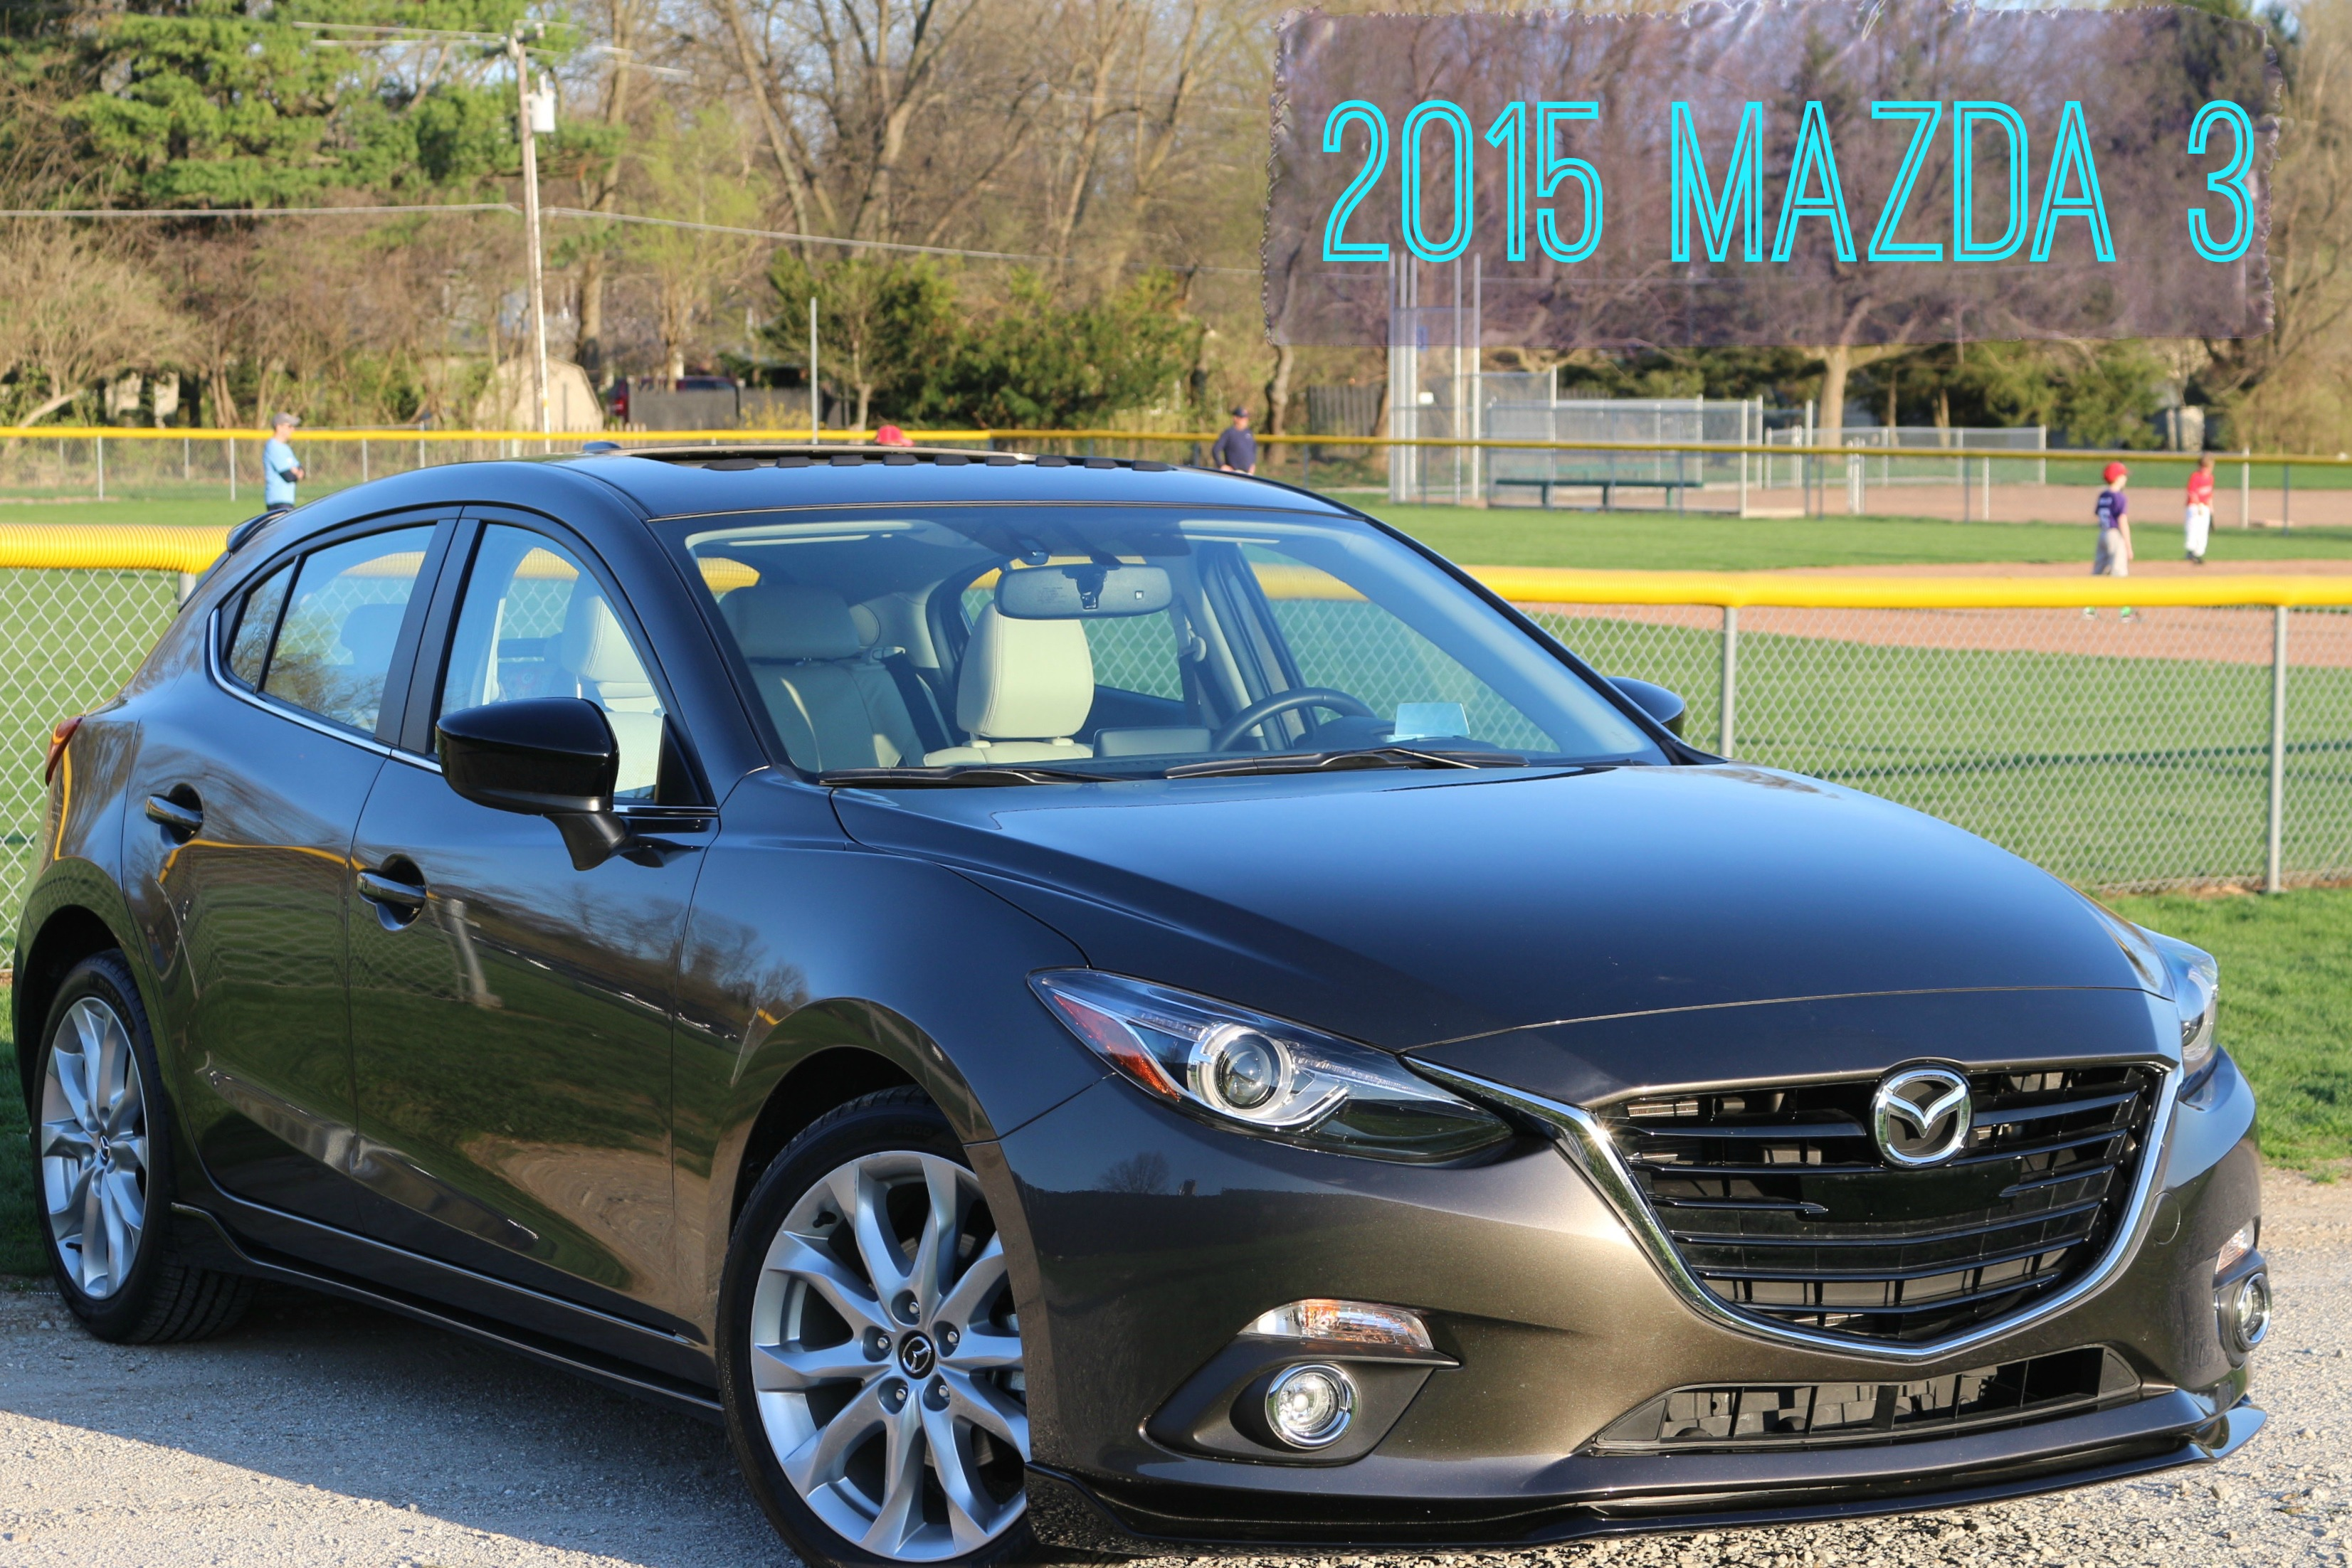 2015 mazda 3 it should have its own infomercial life is poppin 39. Black Bedroom Furniture Sets. Home Design Ideas